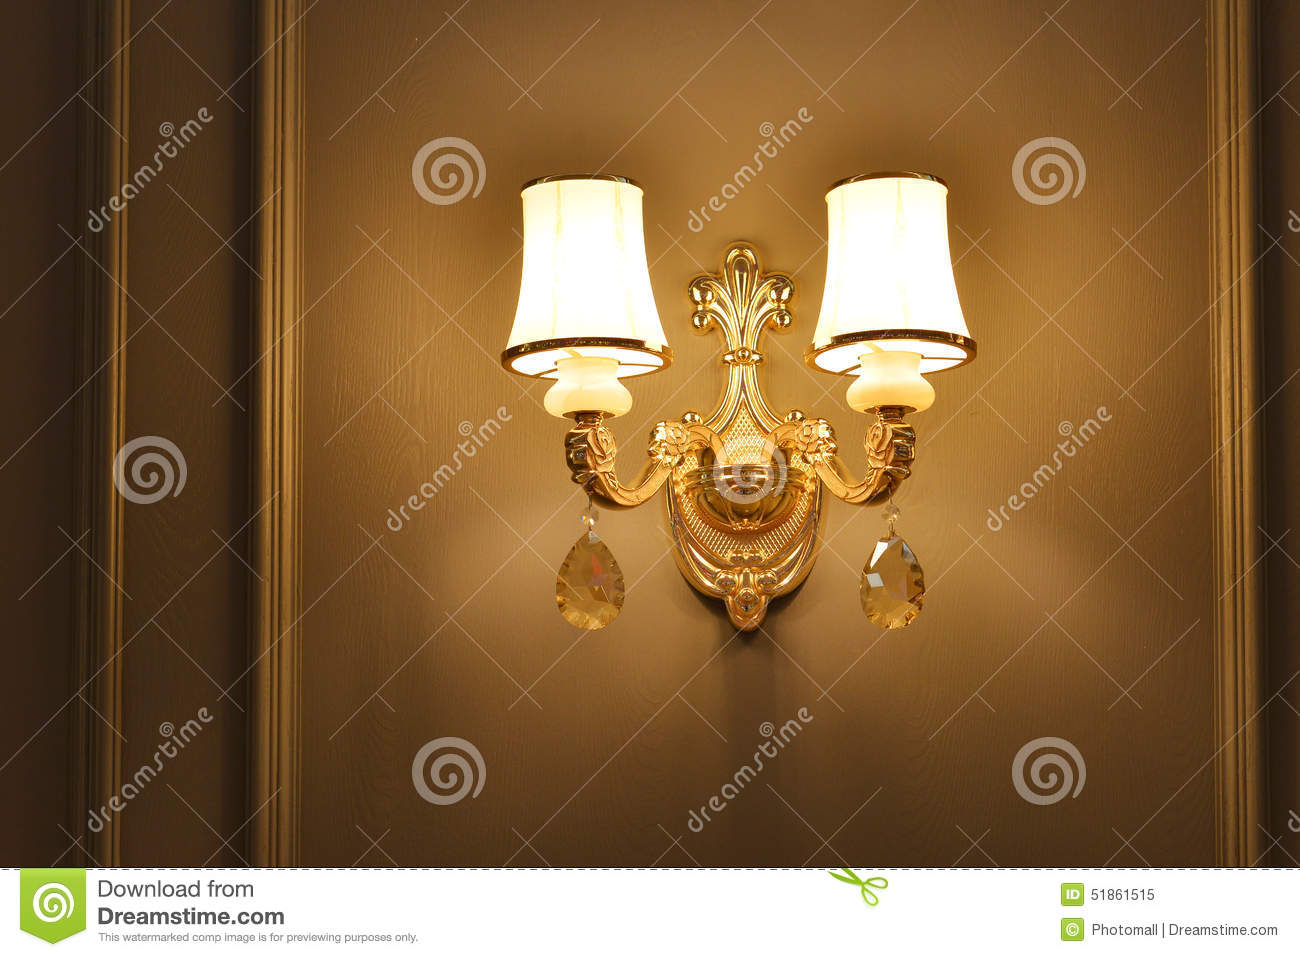 Luxury Crystal Wall Lighting Stock Image Image 51861515